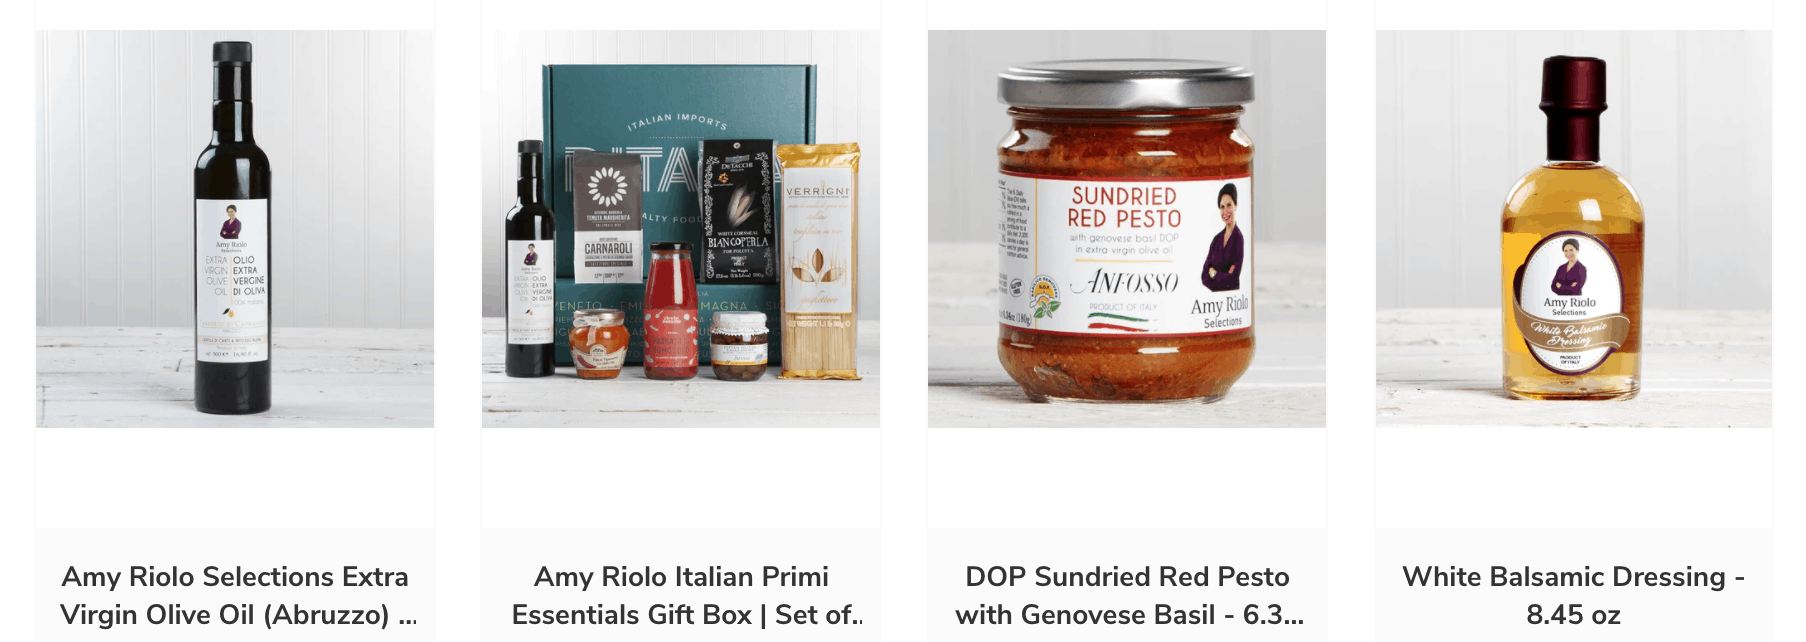 Amy Riolo's products